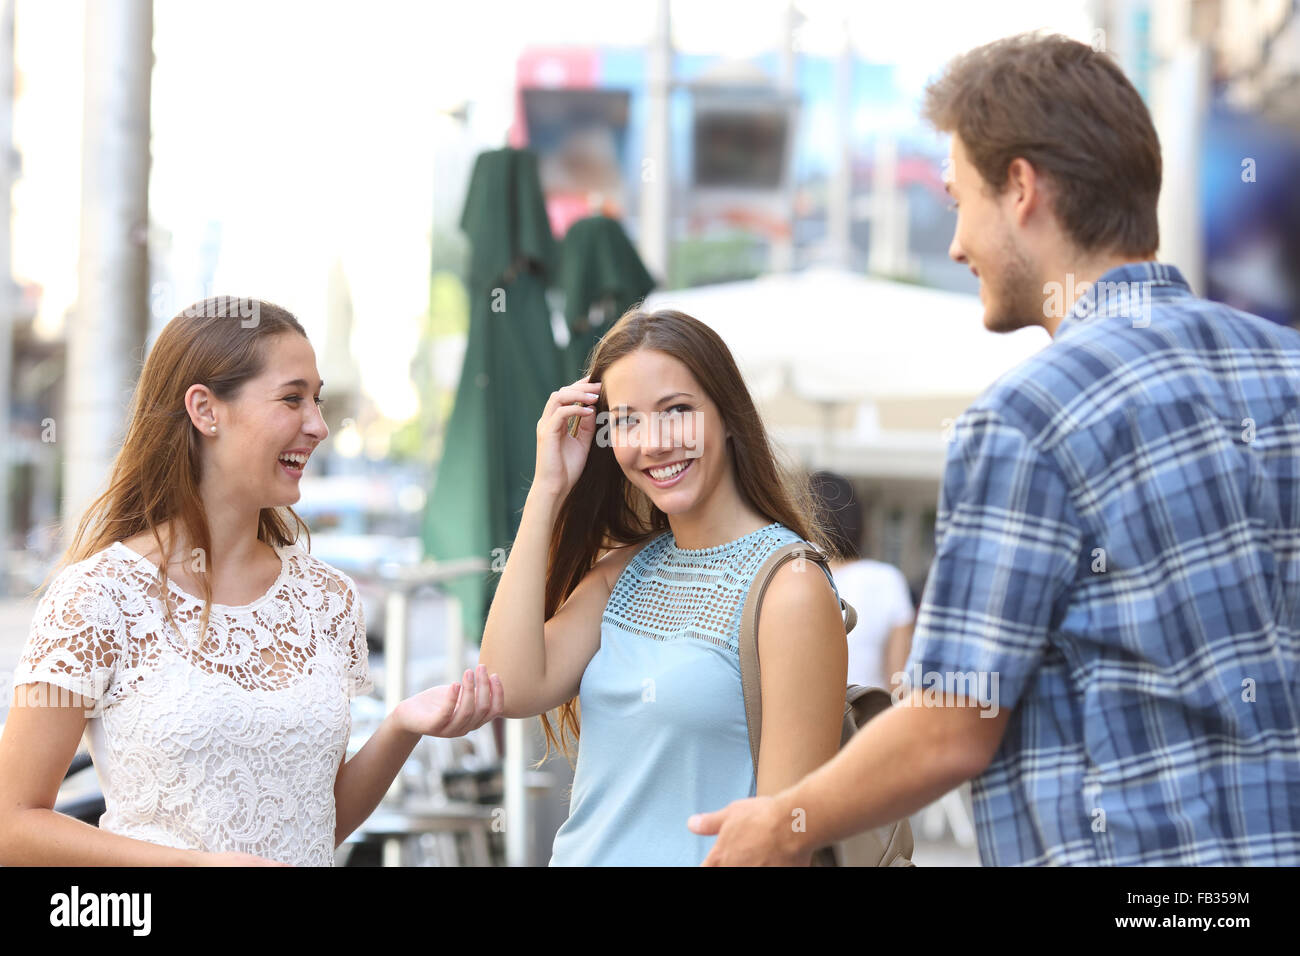 Candid girl with a friend flirting with a boy in the street - Stock Image